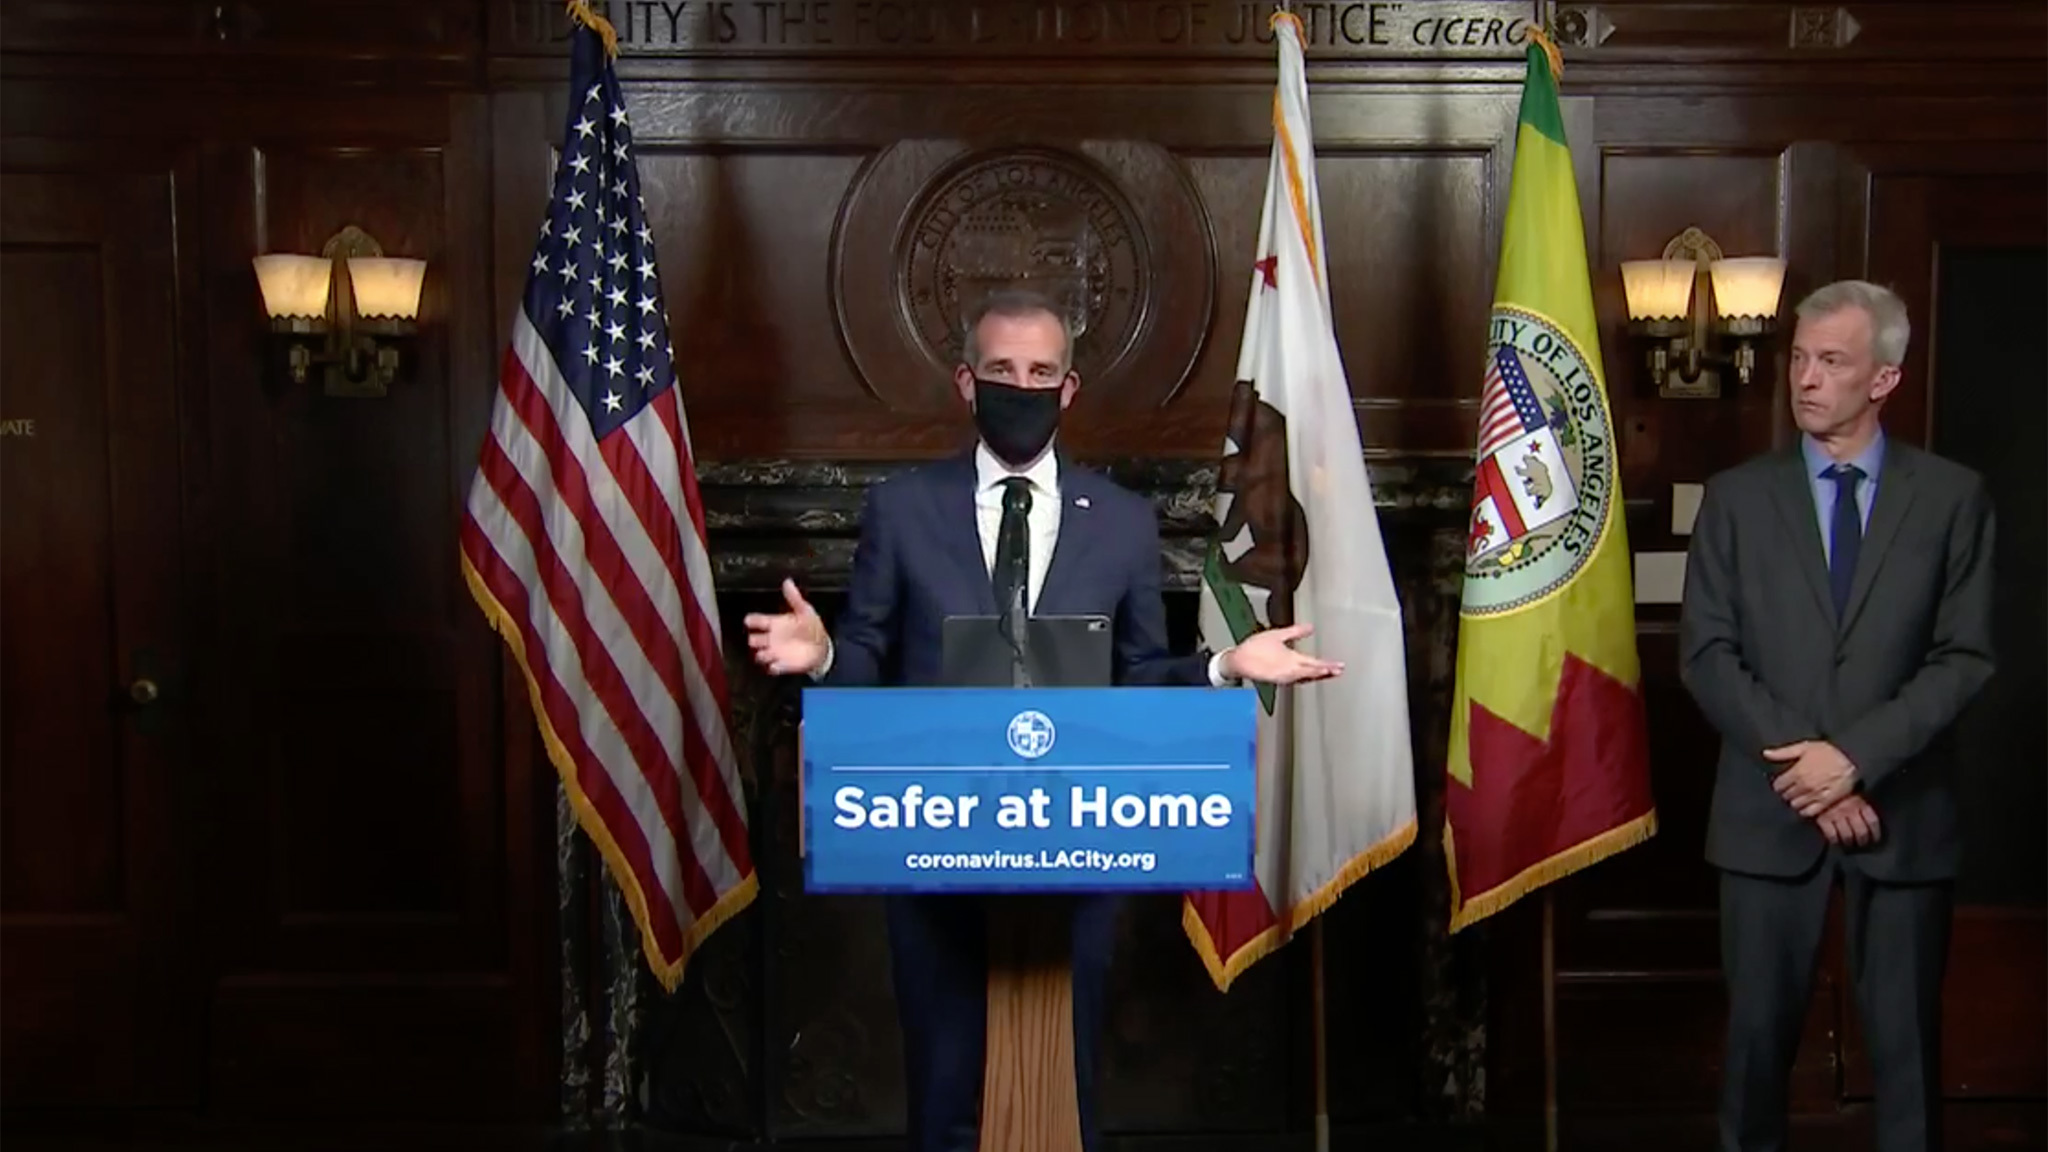 L.A. is now recommending that Angelenos wear masks when in public